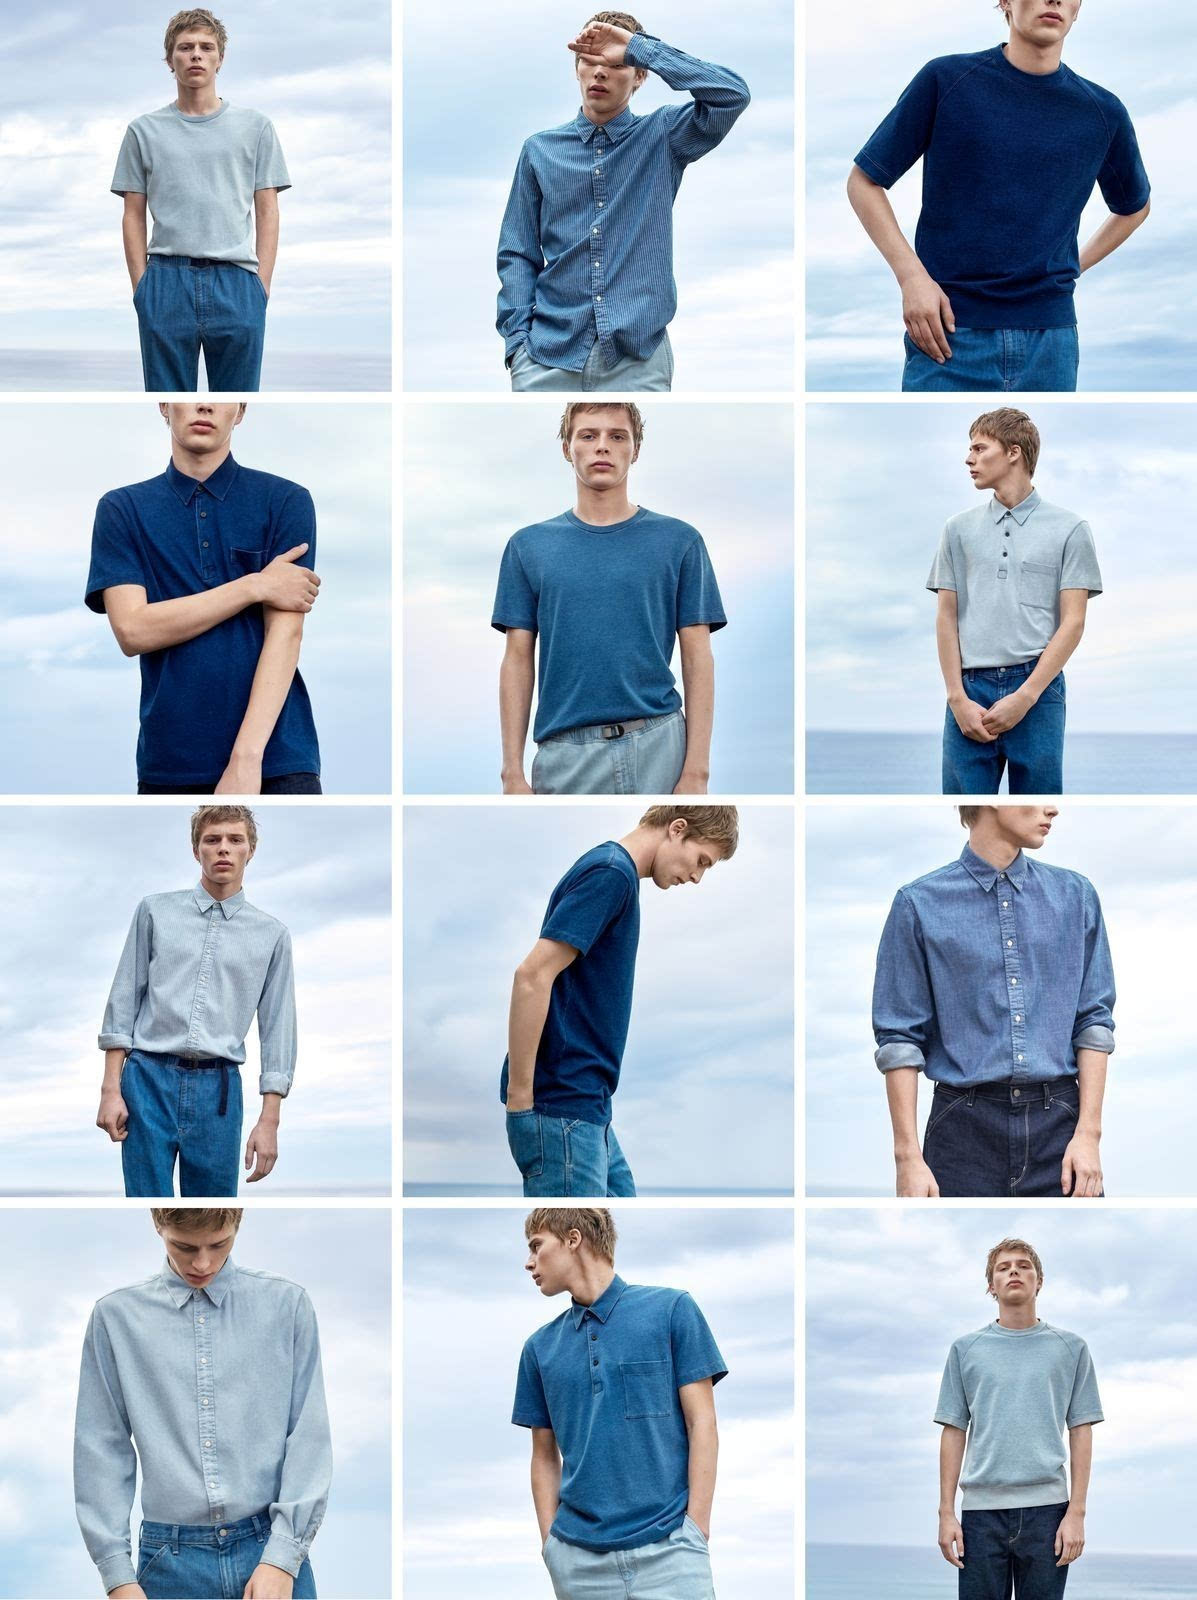 UNIQLO U by CHRISTOPHE LEMAIRE  CAMPAIGN IMAGE  SPRING 2017